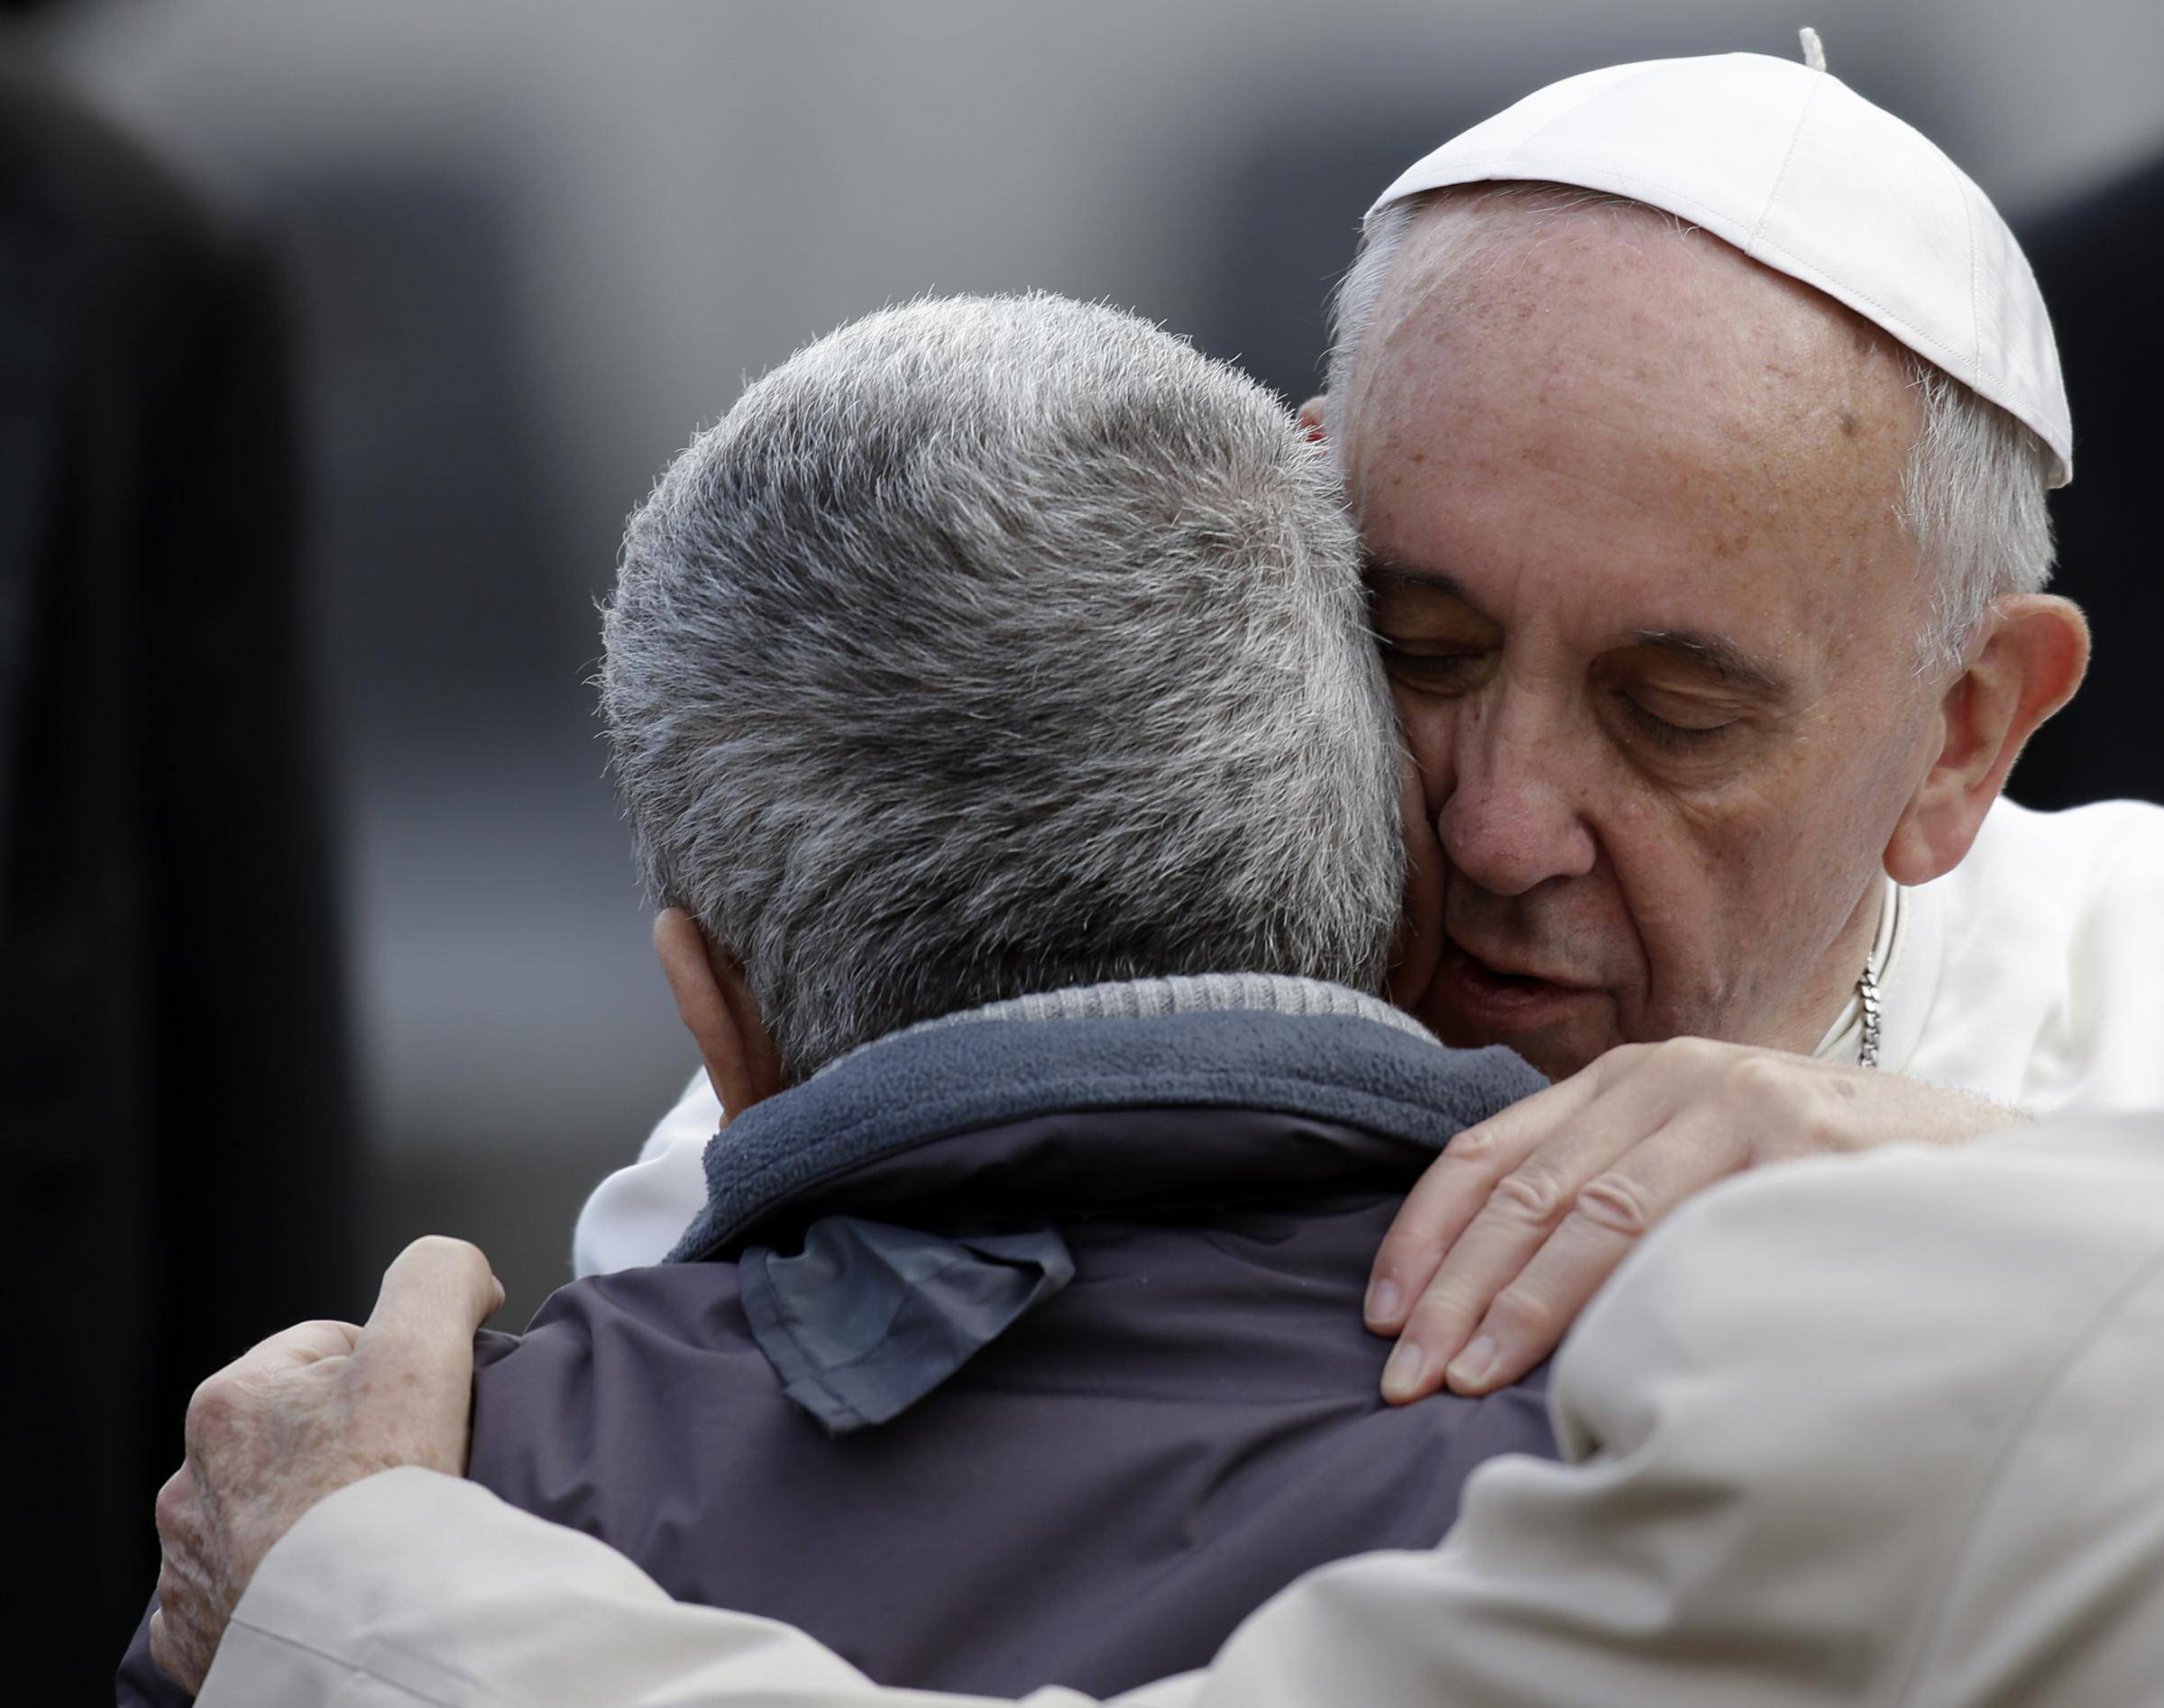 Pope Francis hugs a sick or disabled person at the end of his general audience in St. Peter's Square at the Vatican, Wednesday, Nov. 20, 2013. At the end of the general audience Pope Francis dedicates a few minutes greeting sick or disabled people. (AP Photo/Gregorio Borgia)